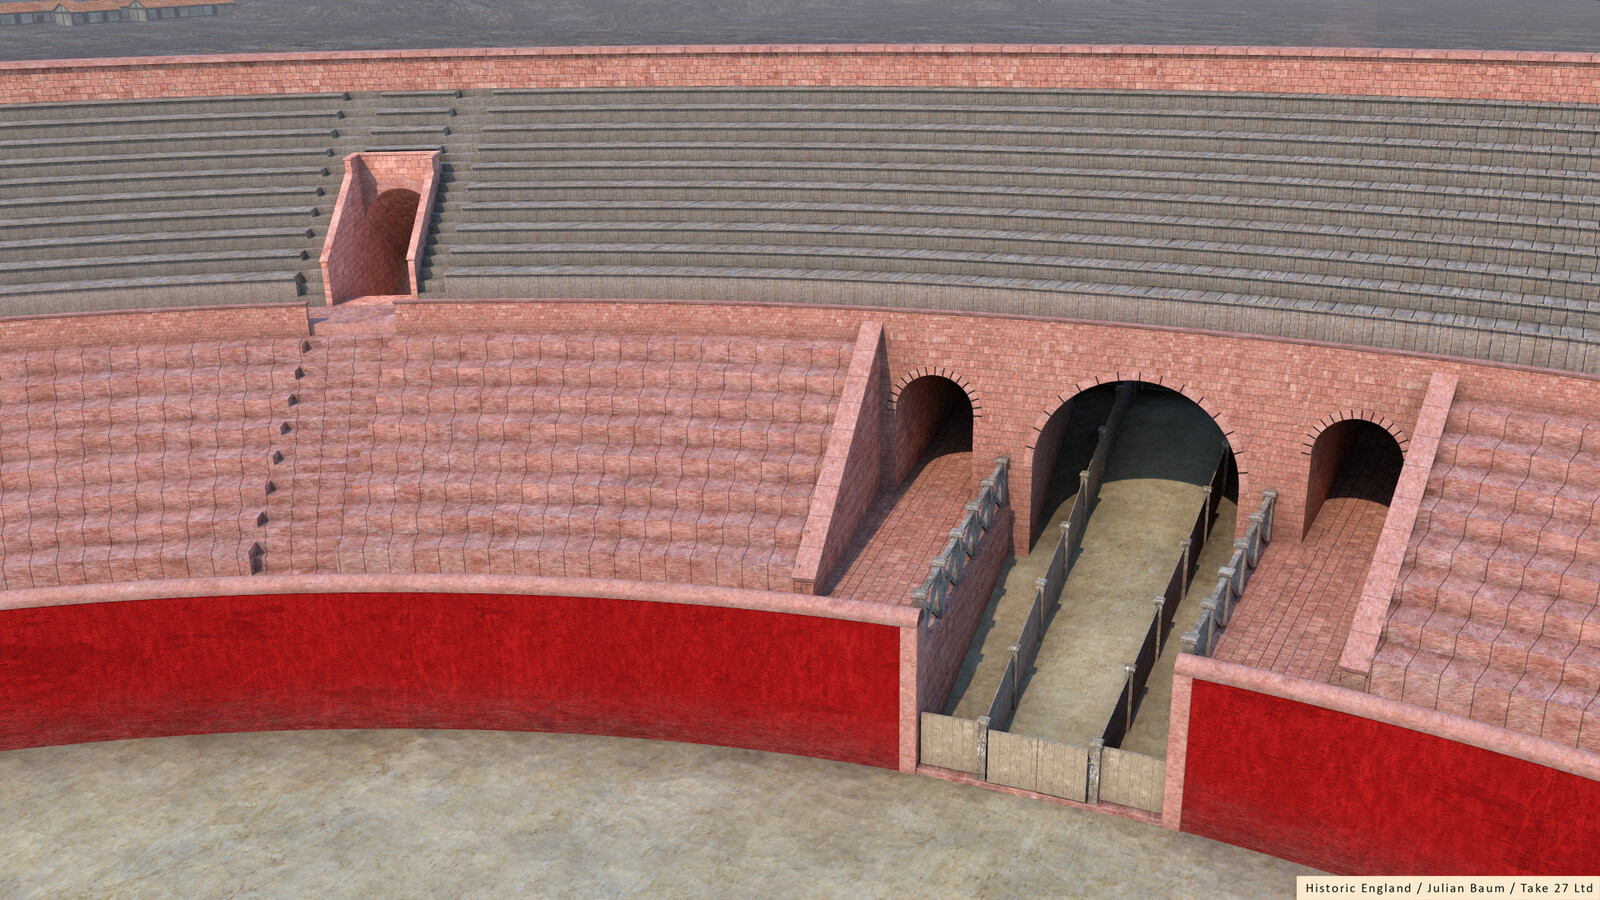 Chester's Roman ampitheatre, showing the lower stone tiers of seating, with the upper tiers being wooden.